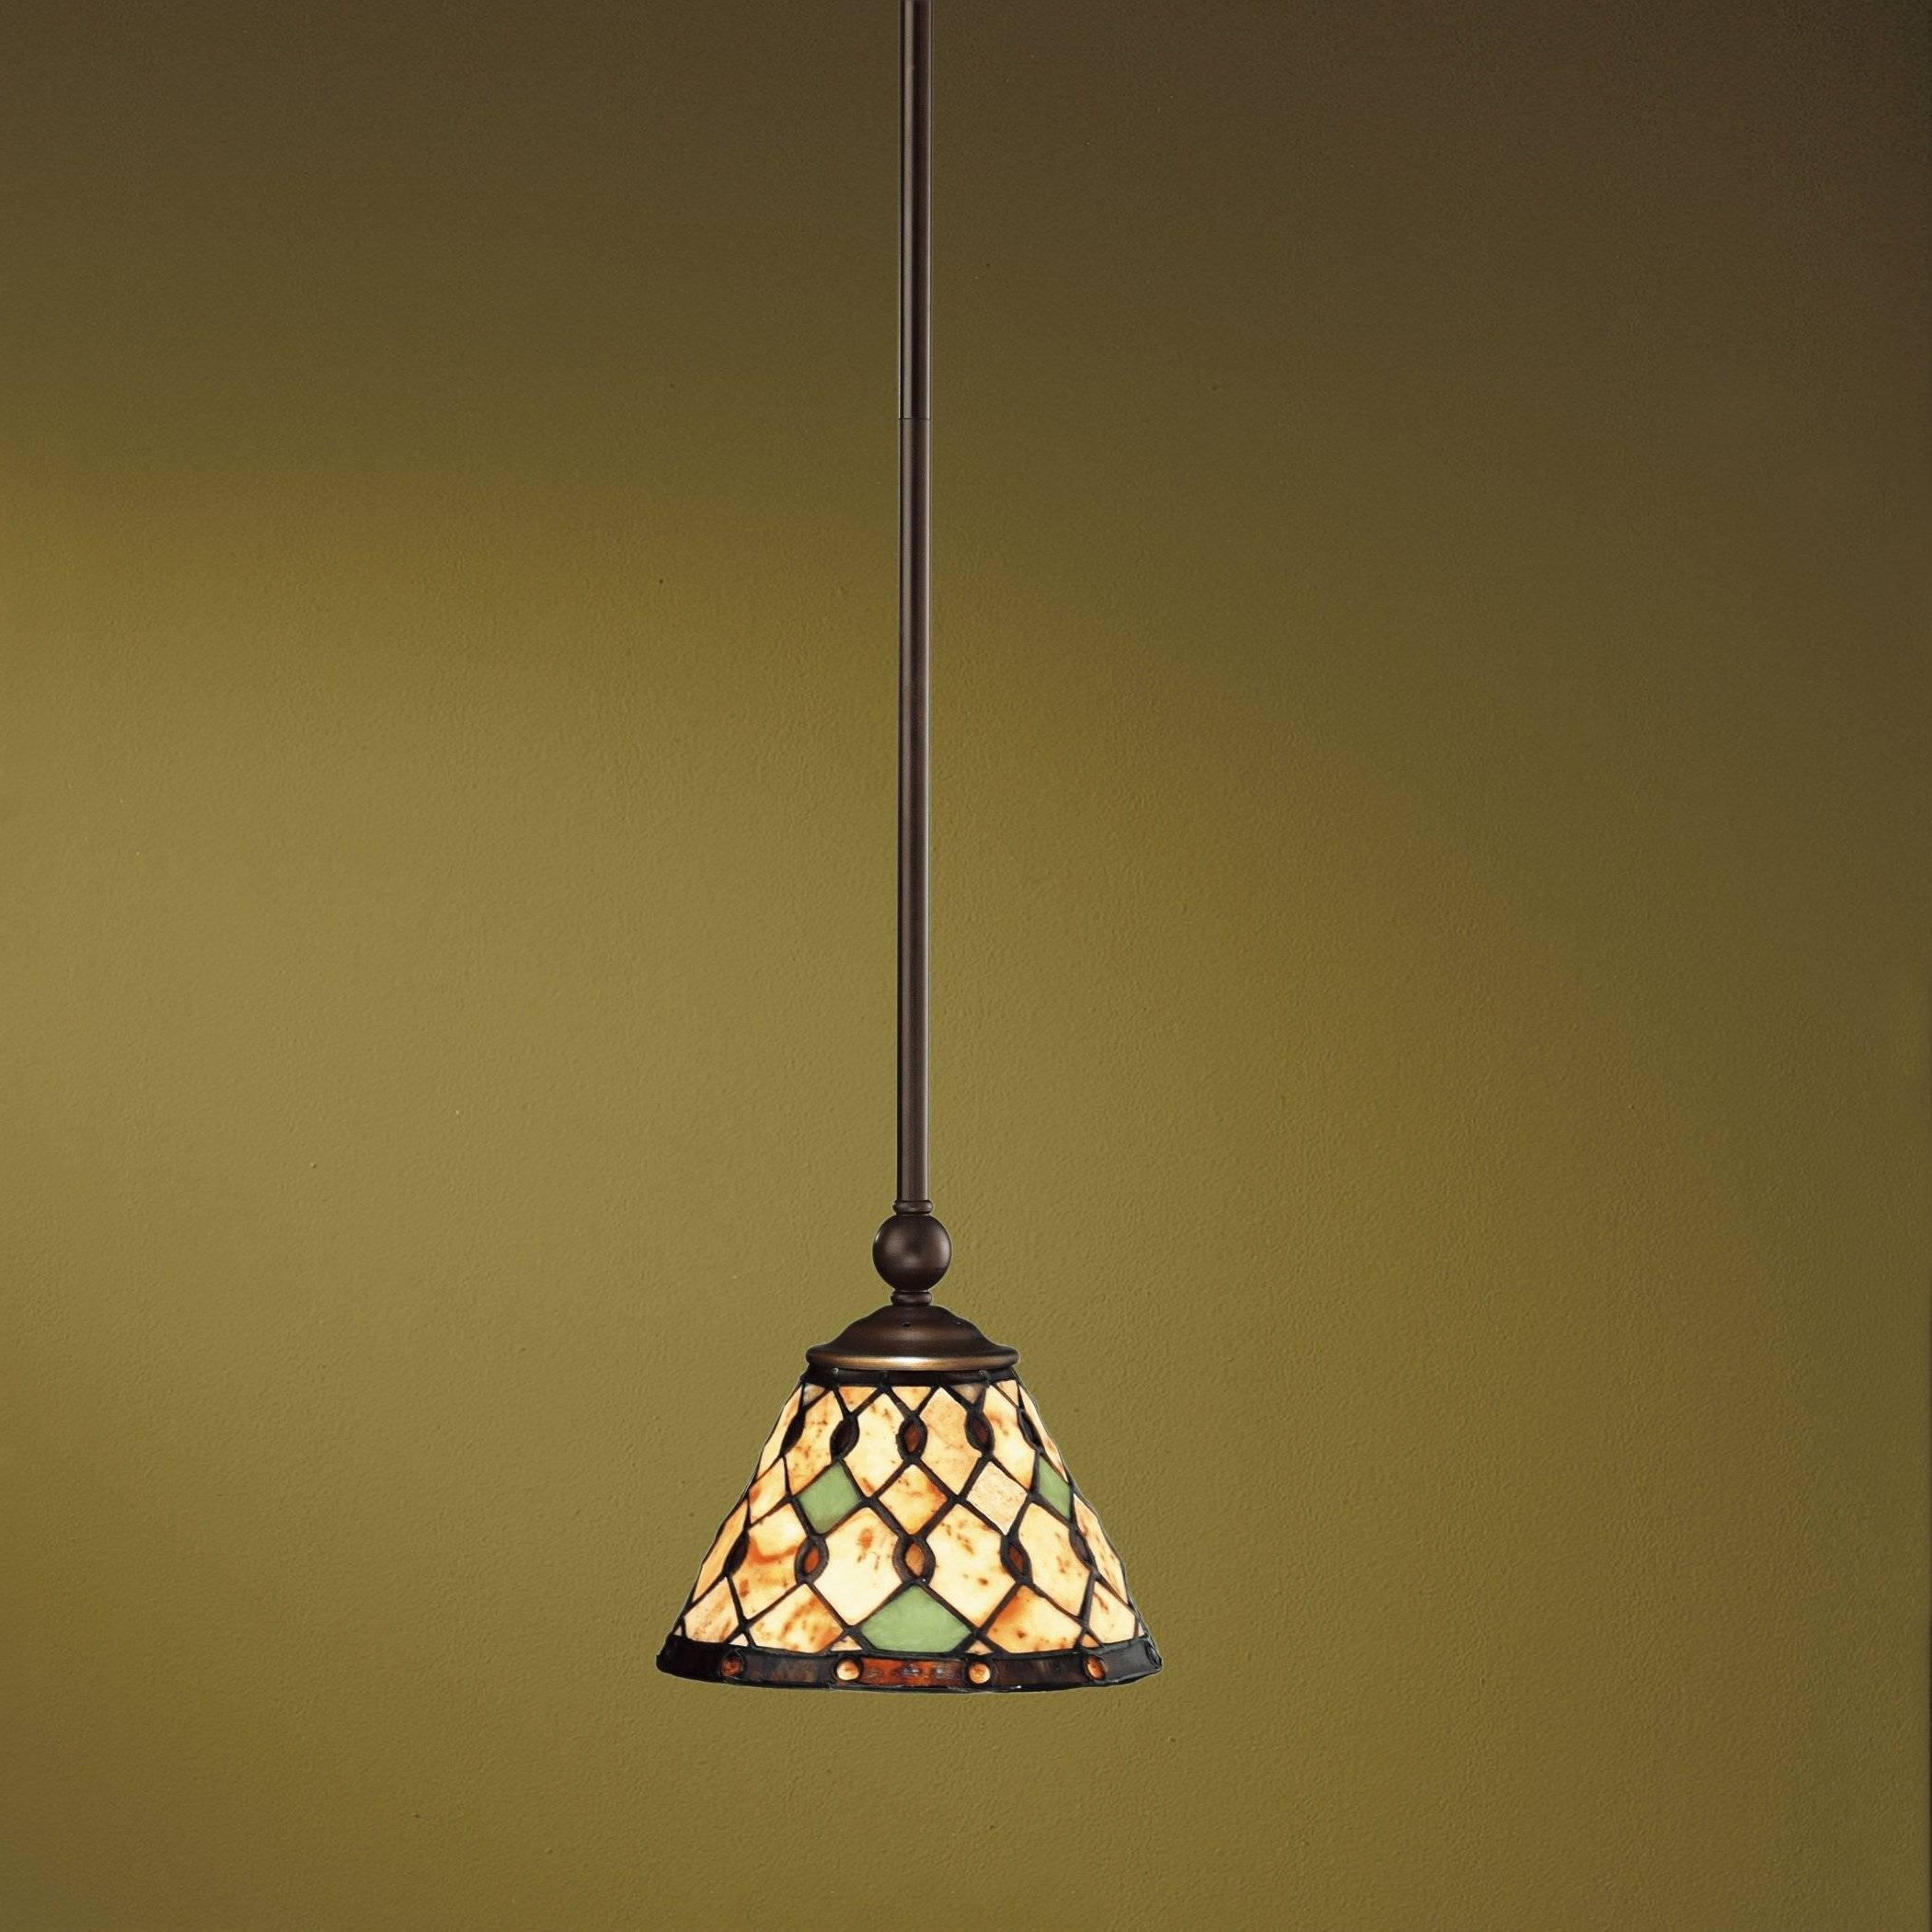 Tiffany Pendant Lamp - One Of The Most Loved Things To Add To A for Stained Glass Mini Pendant Lights (Image 15 of 15)